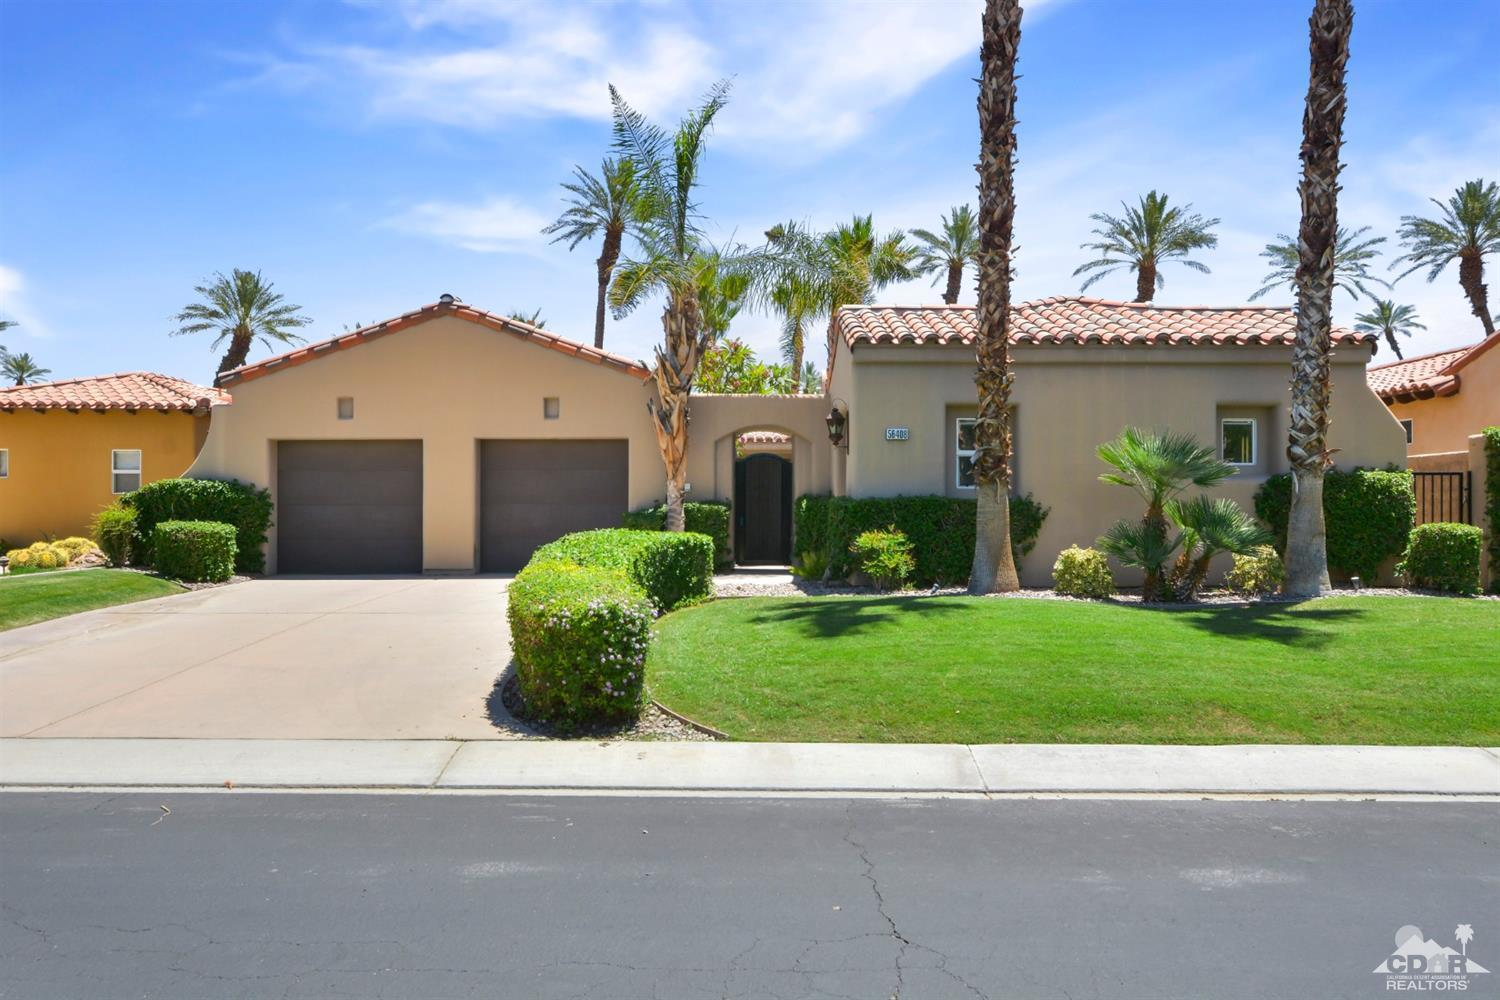 56408 Palms Drive, La Quinta, California 92253, 3 Bedrooms Bedrooms, ,4 BathroomsBathrooms,Residential,For Sale,56408 Palms Drive,219045042